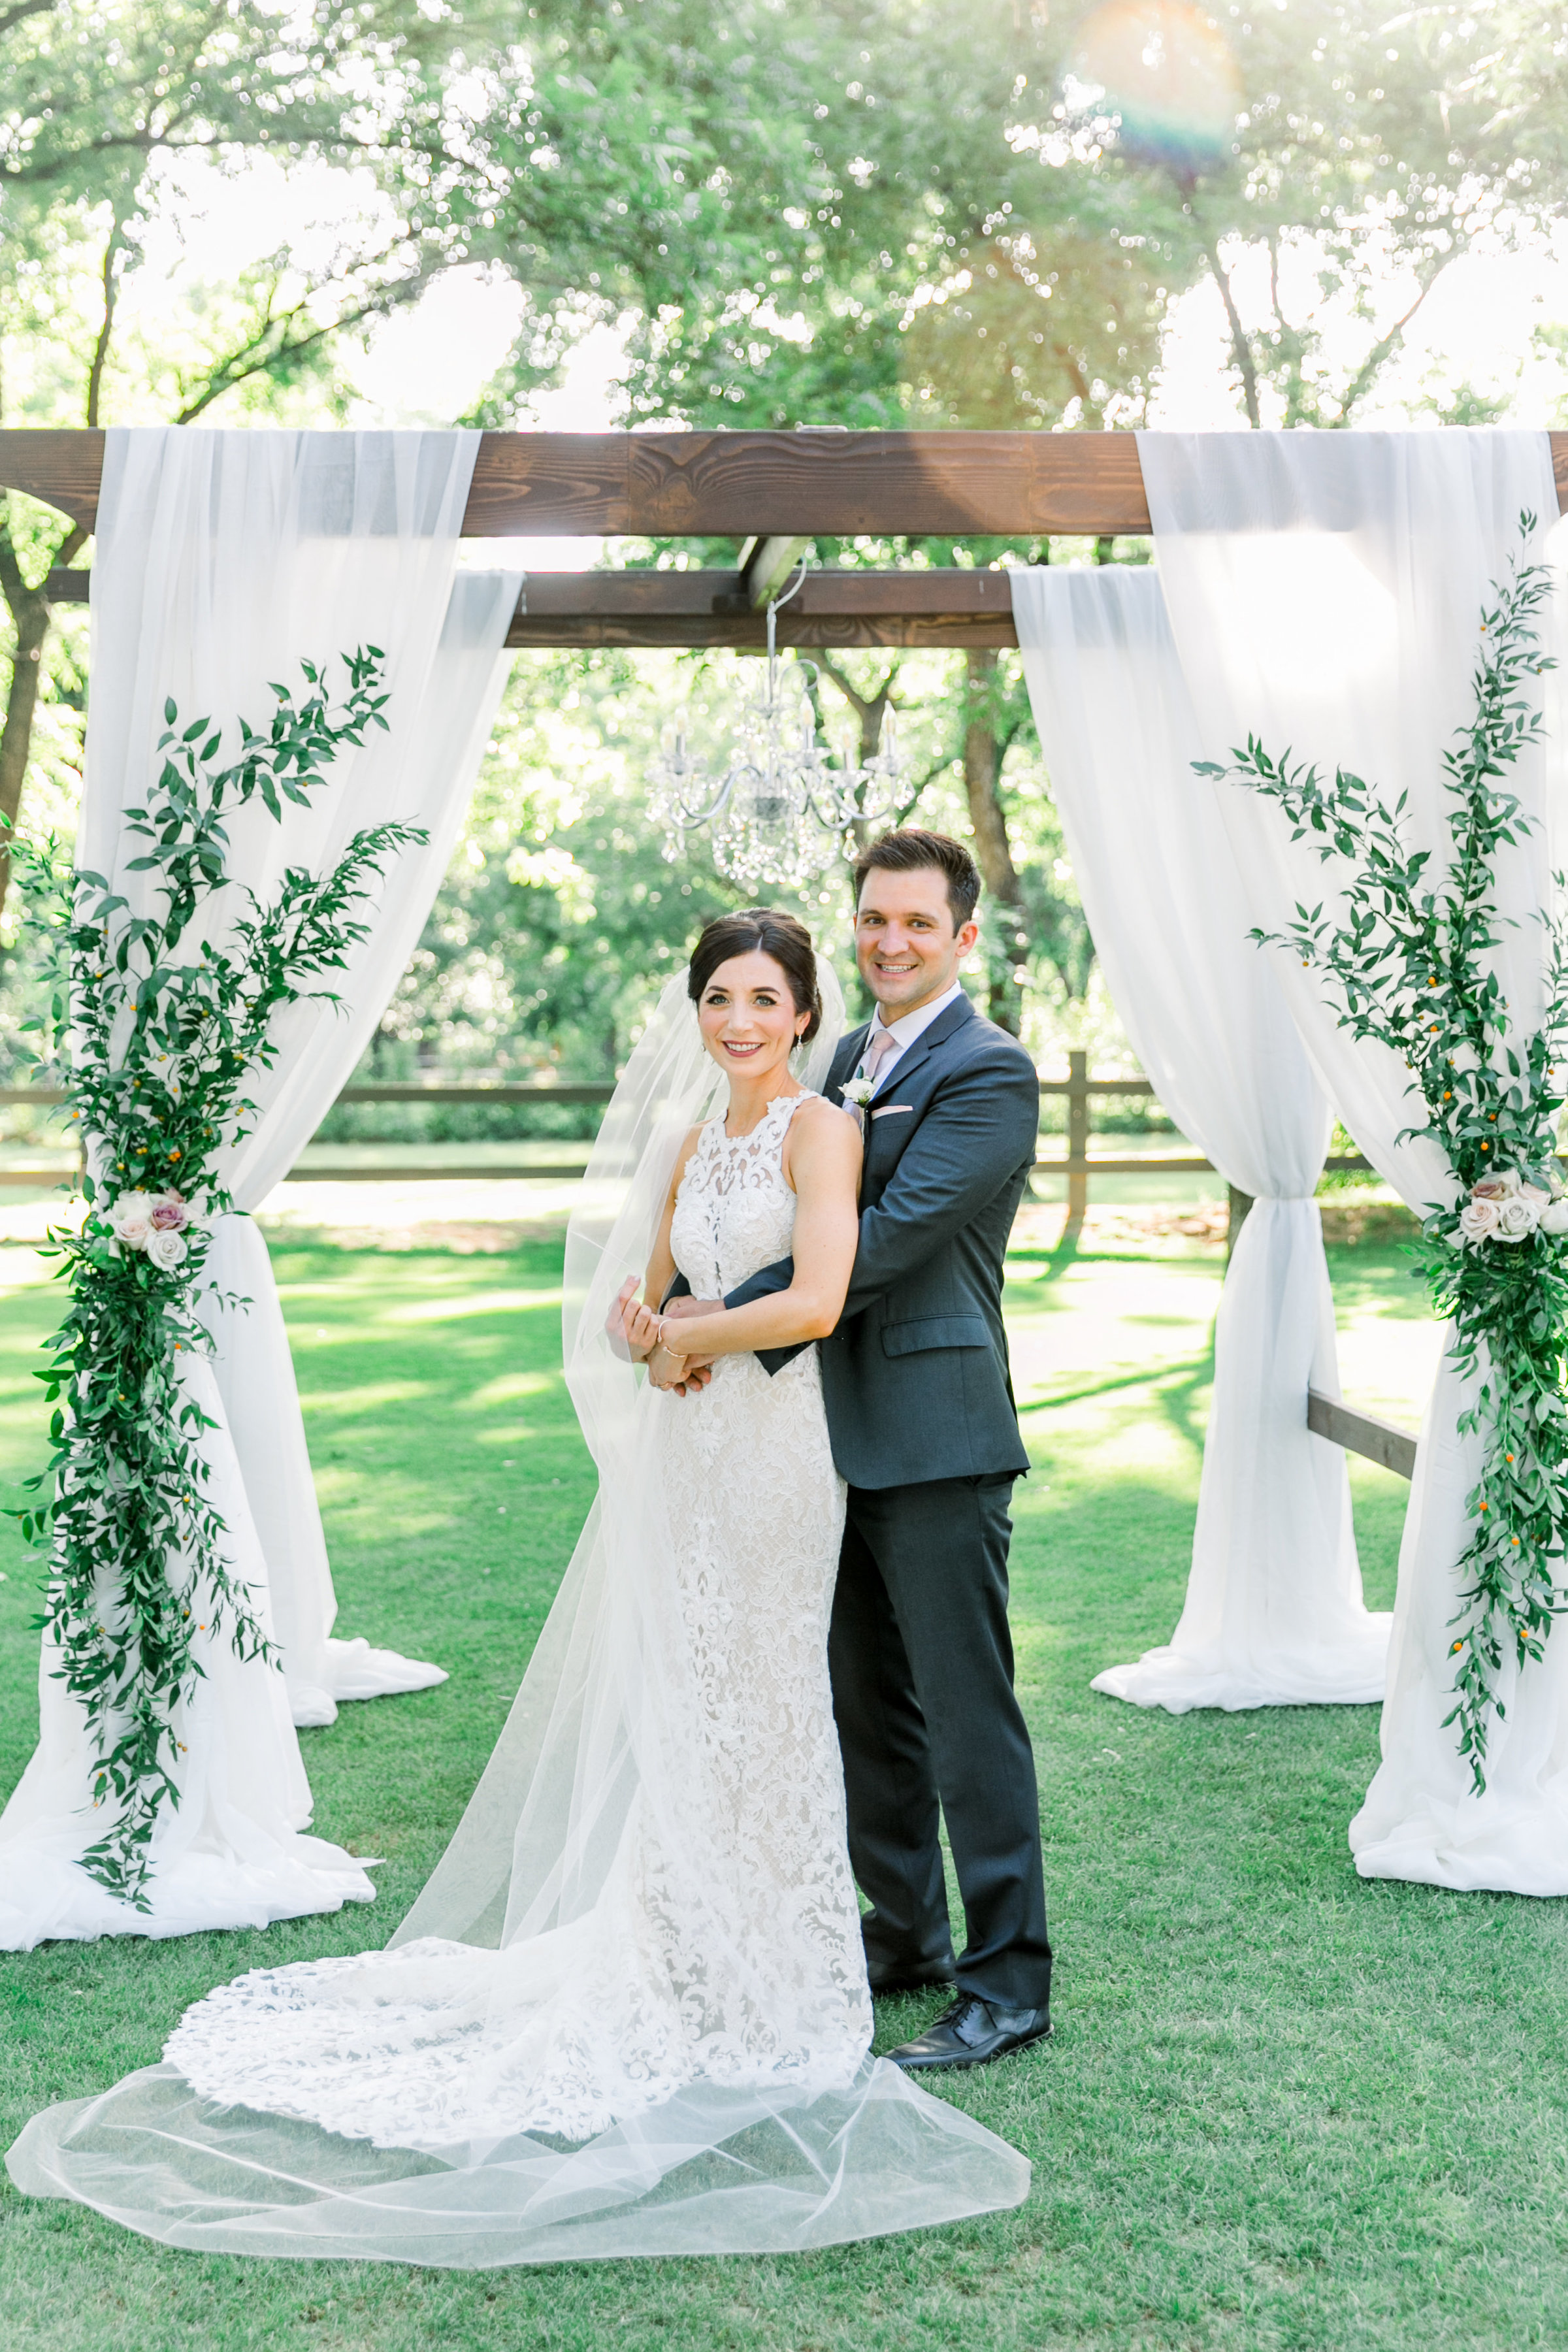 Karlie Colleen Photography - Venue At The Grove - Arizona Wedding - Maggie & Grant -65